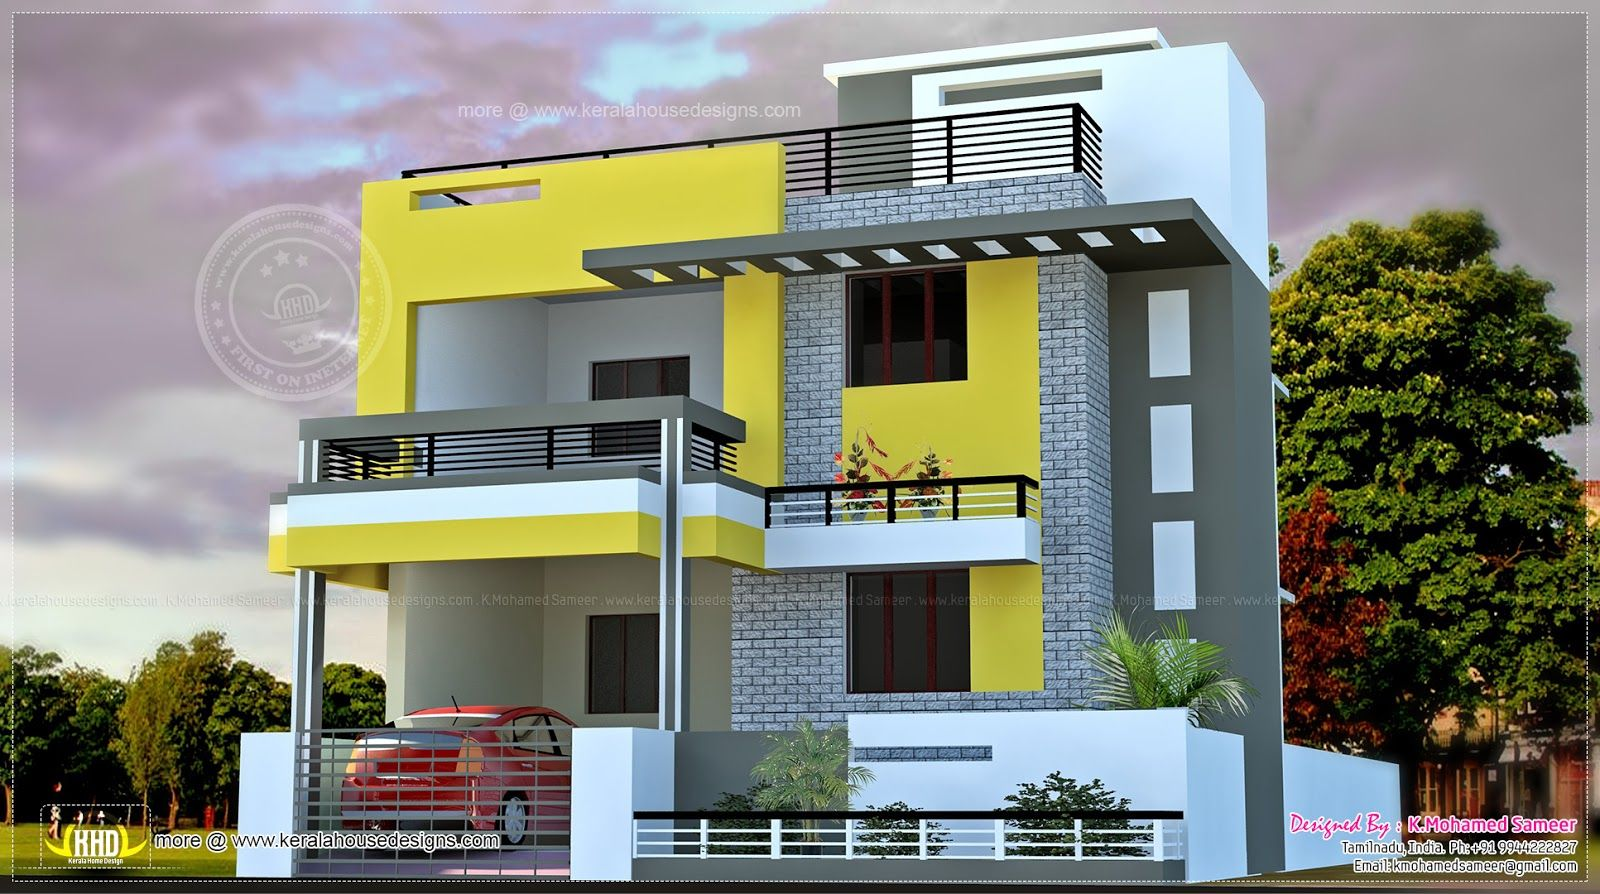 Elevations of residential buildings in indian photo for Building type house design